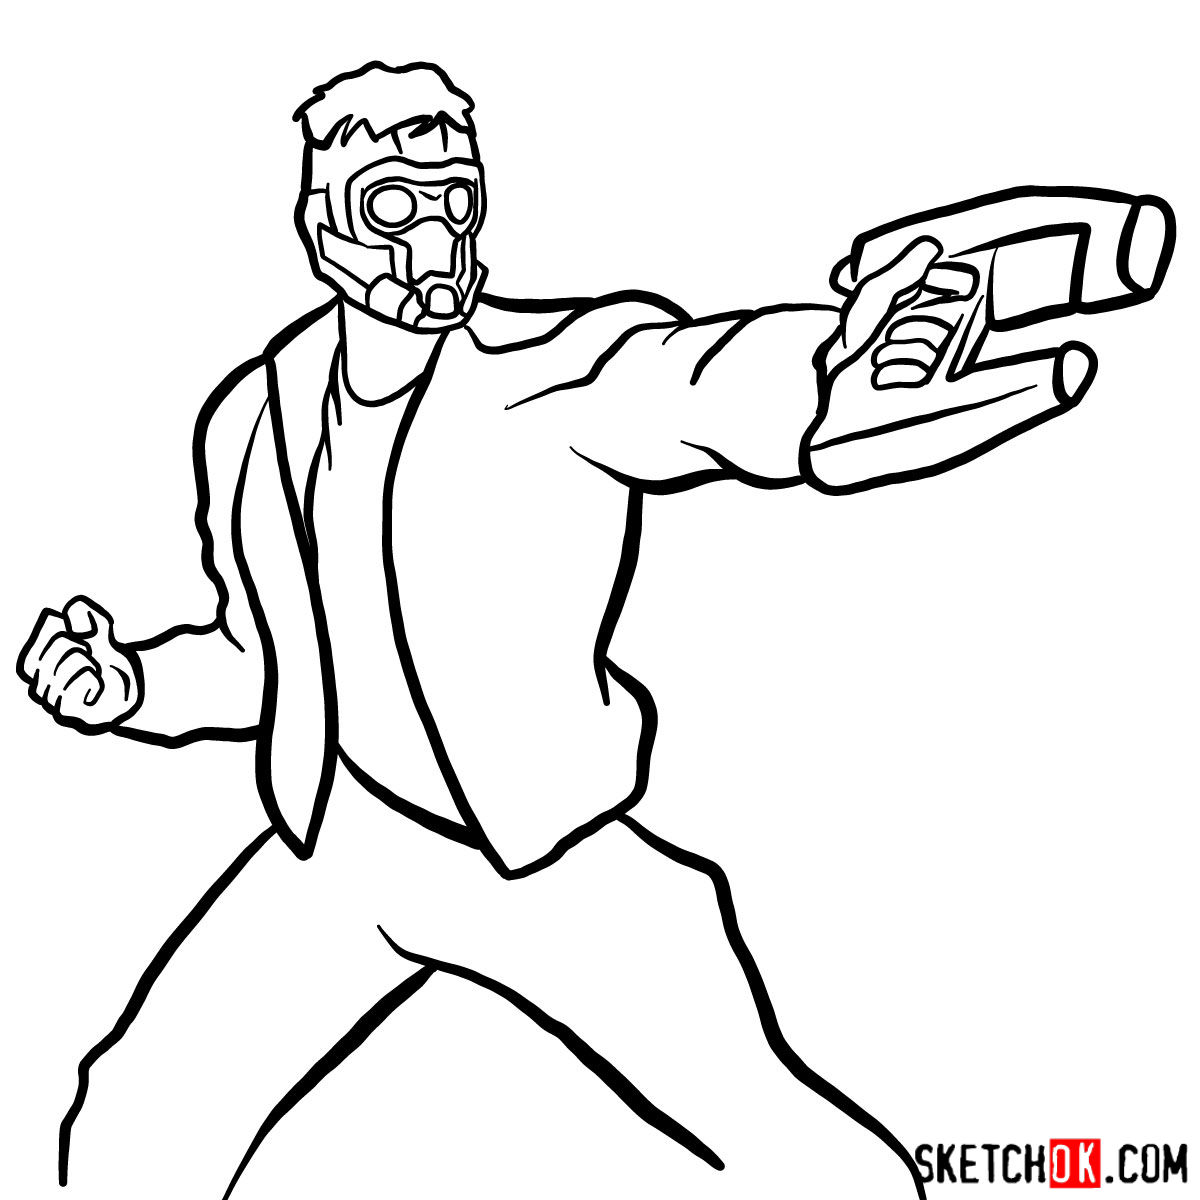 How to draw Star-Lord from Guardians of the Galaxy - step 13